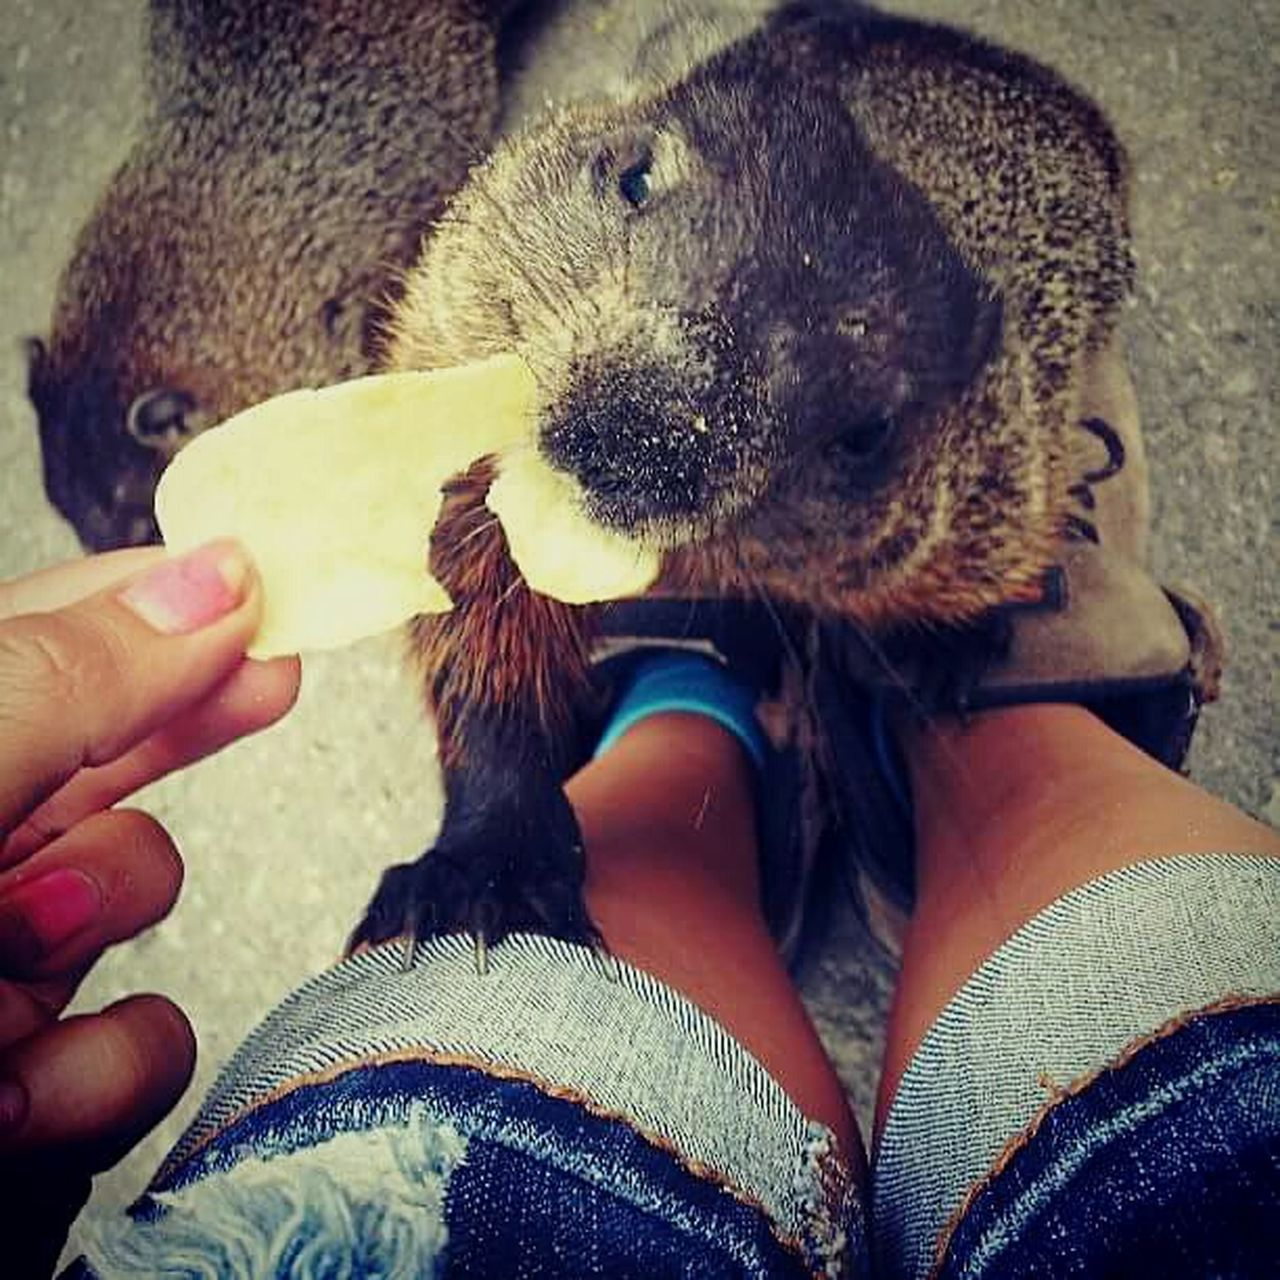 Groundhogs Human Hand Lifestyles Real People Domestic Animals Mammal Close-up Day One Person Only Women Groundhog Friendship Wildlife Nature